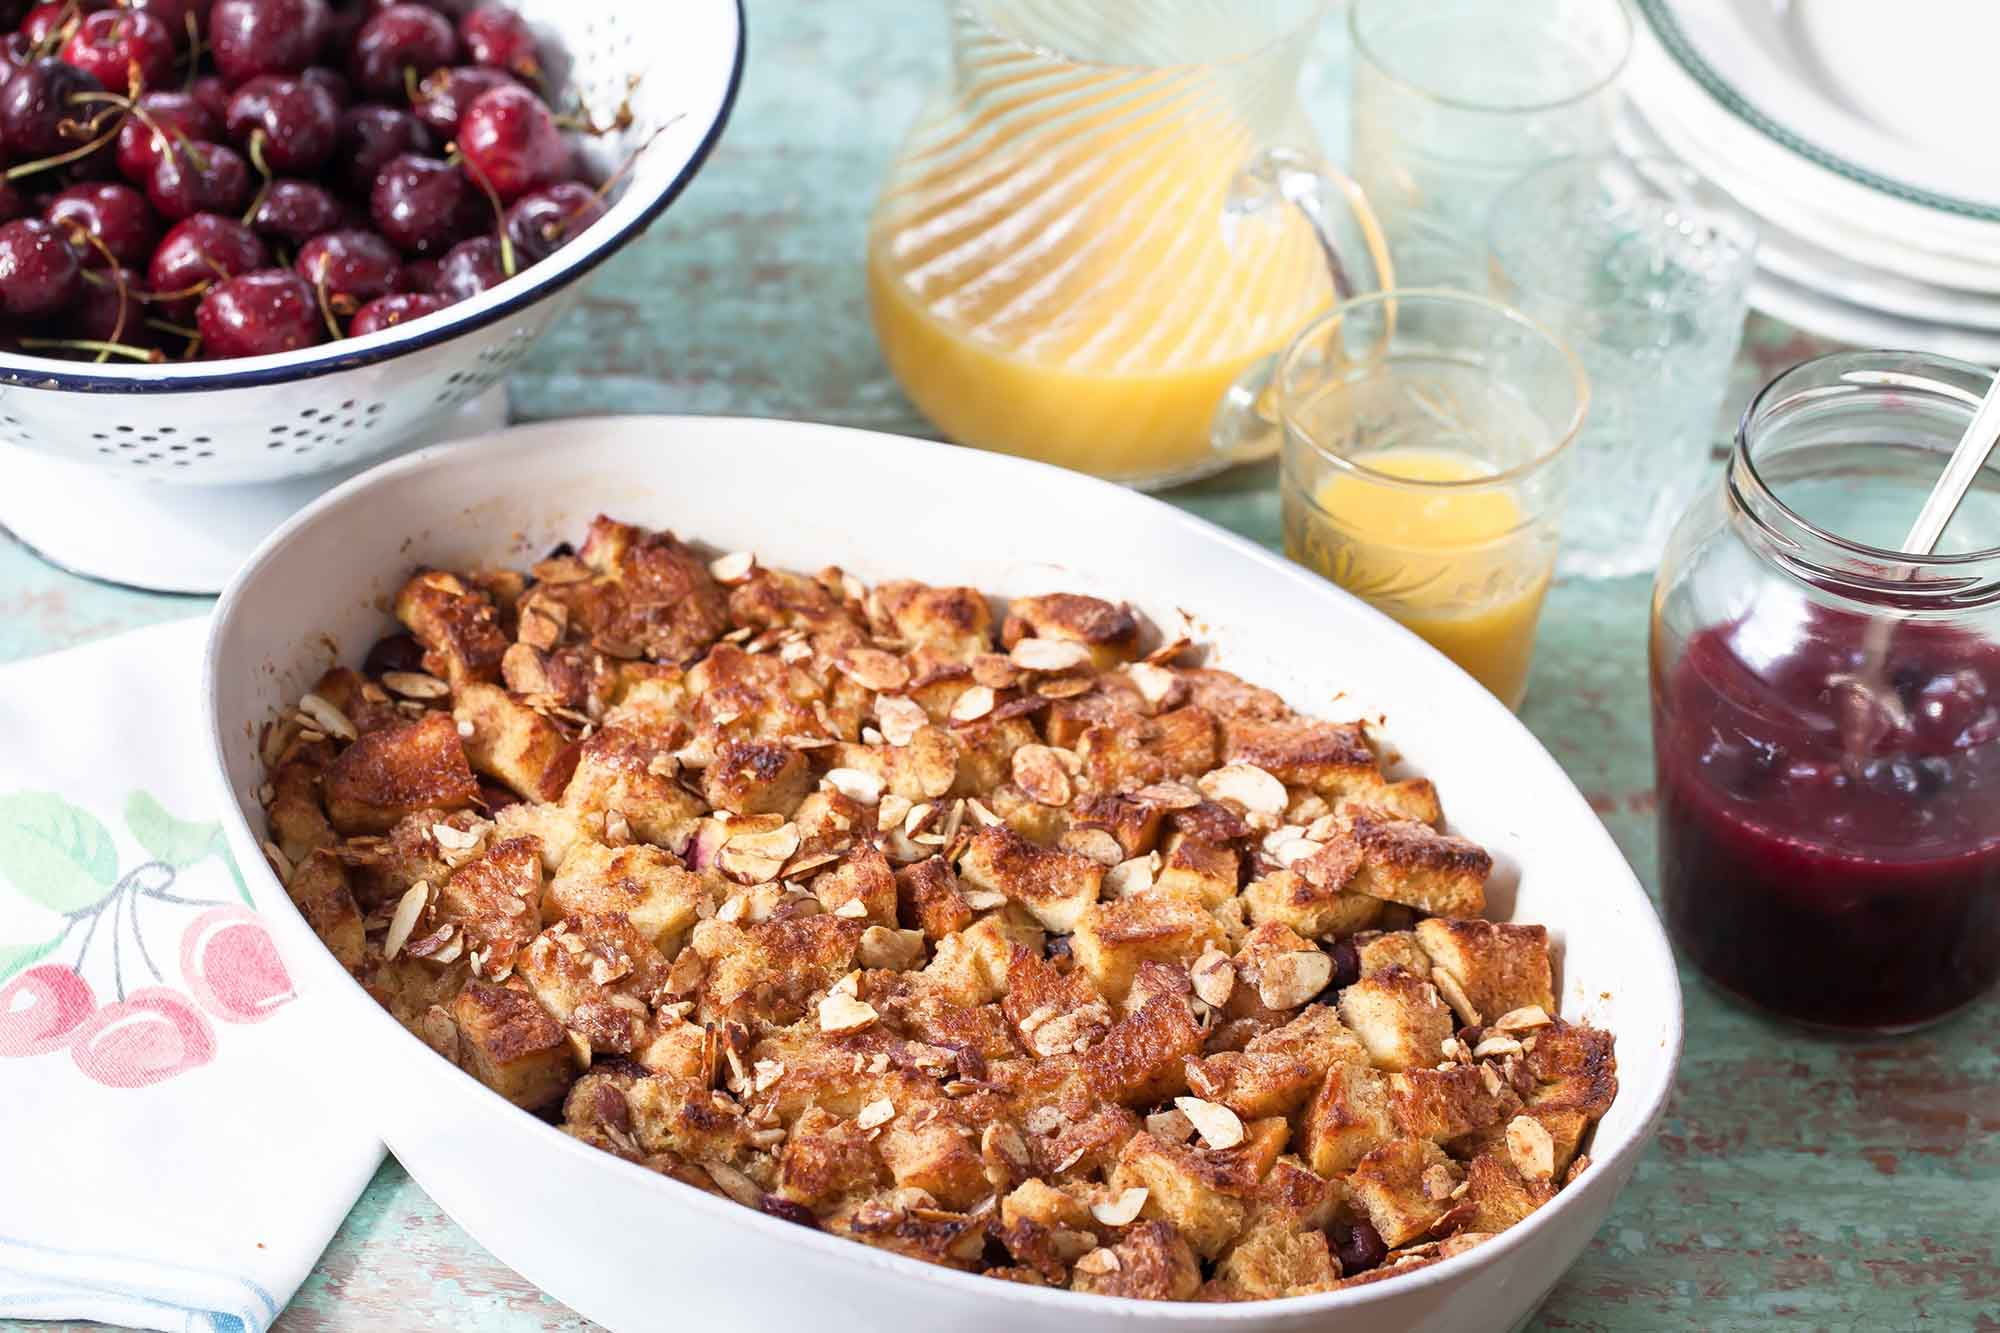 Baked Cherry French Toast Casserole